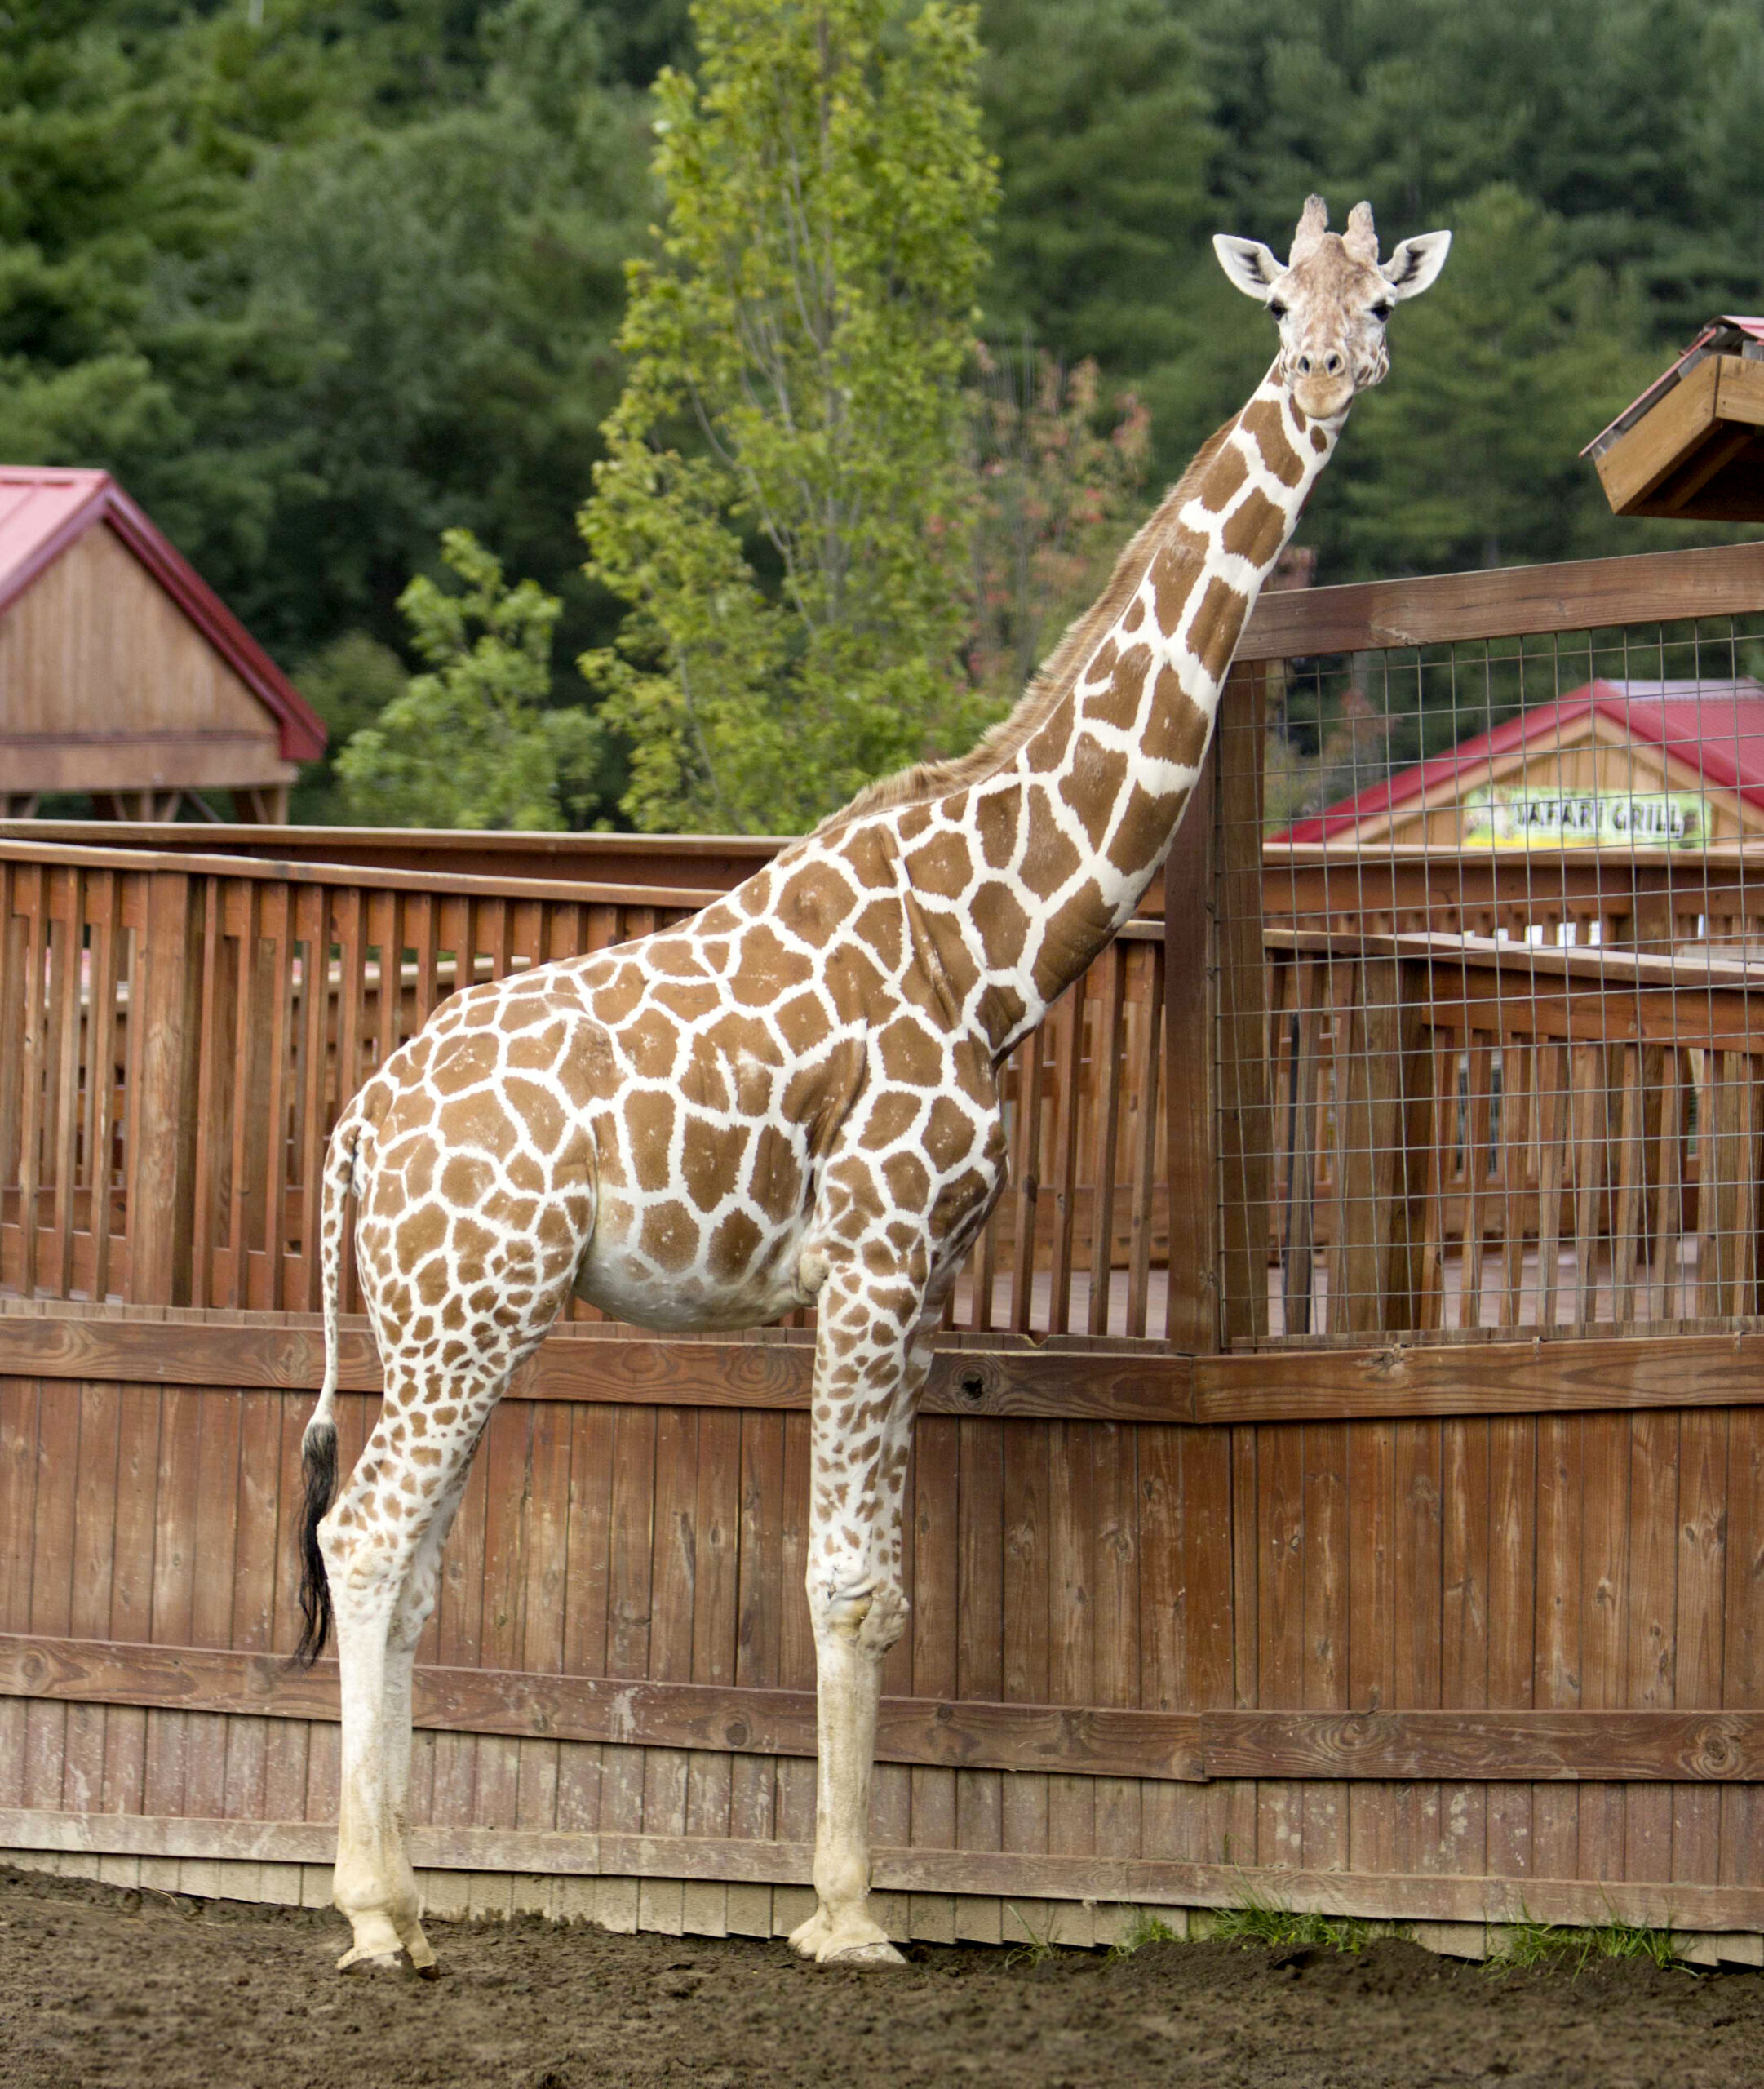 Animal Adventure Park announces passing of April the Giraffe